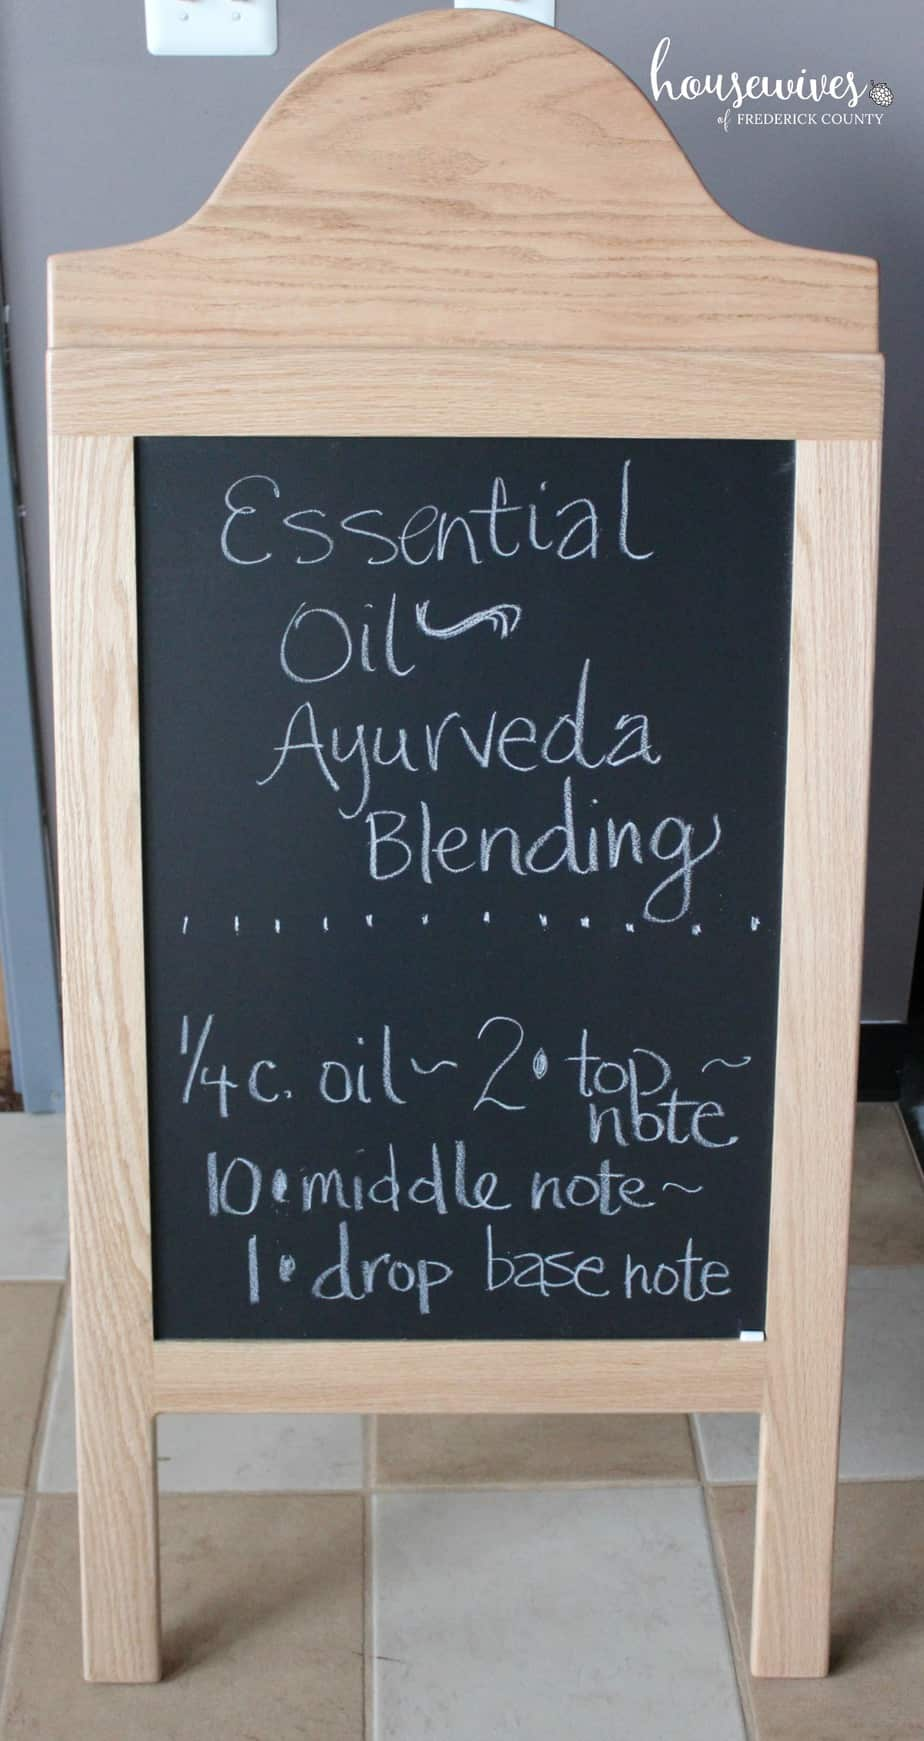 Blending essential oils for Abhyanga